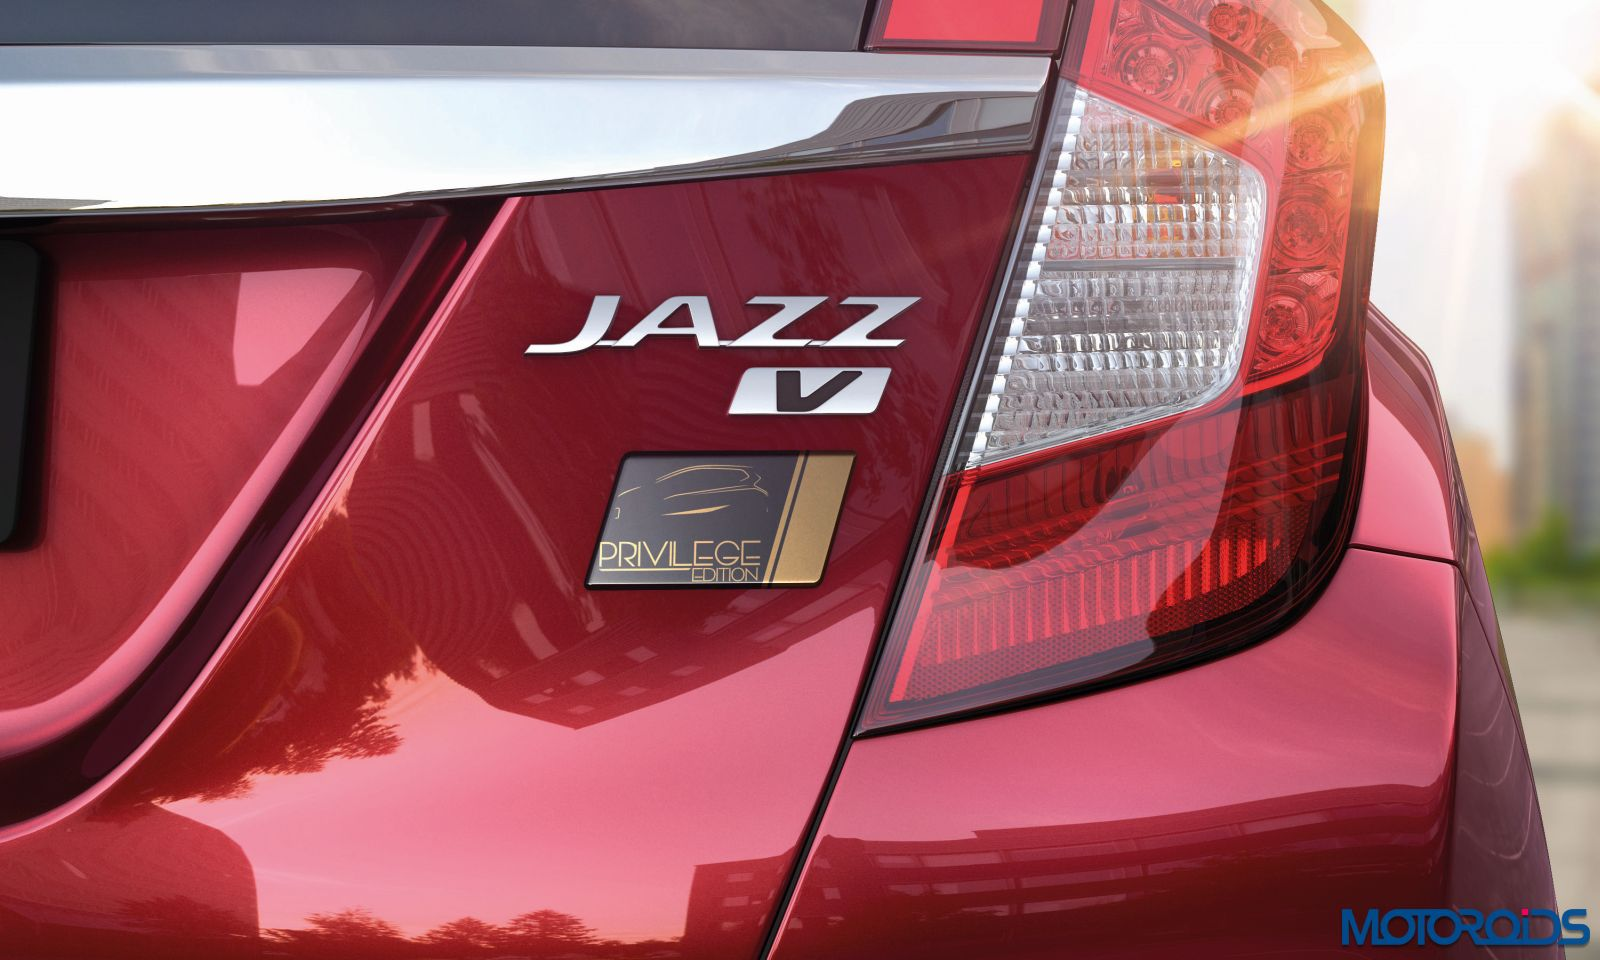 Honda-Jazz-Privilege-edition-1